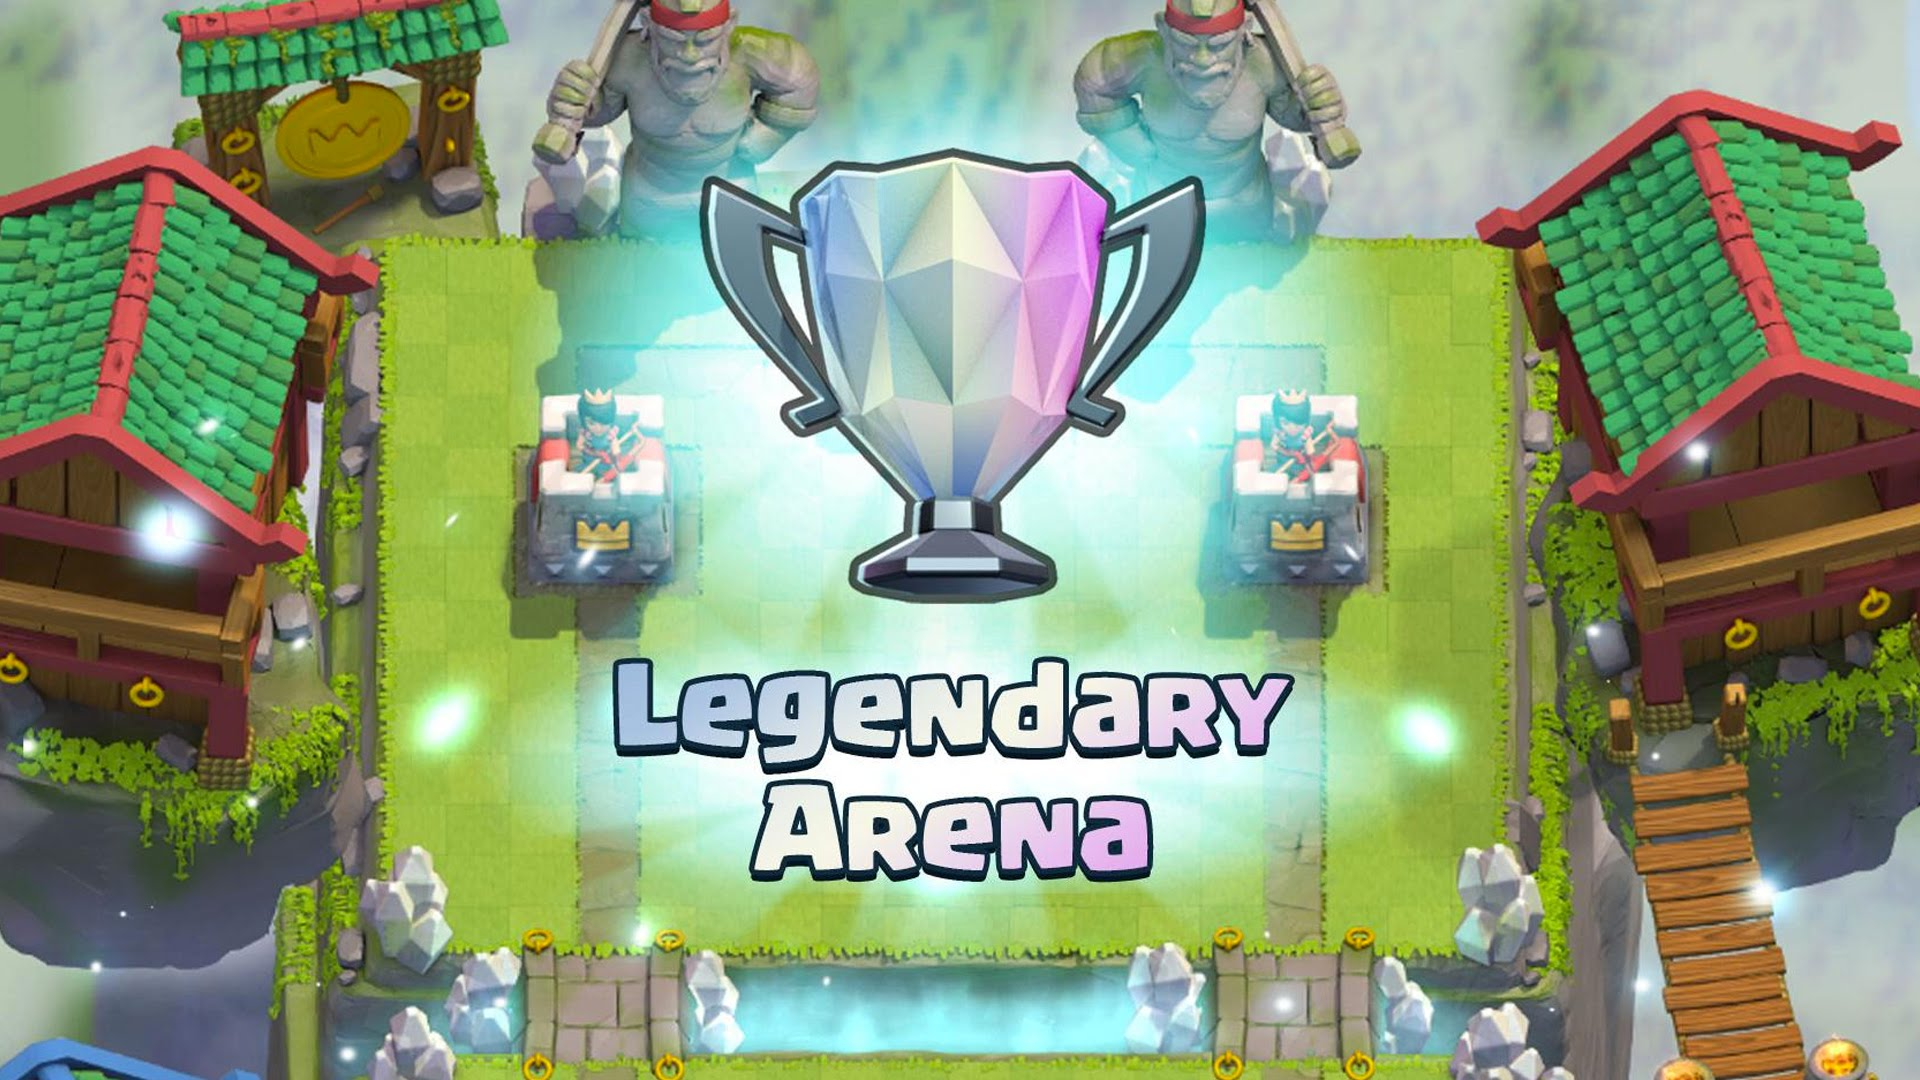 Arena 10 o Legendaria de Clash Royale